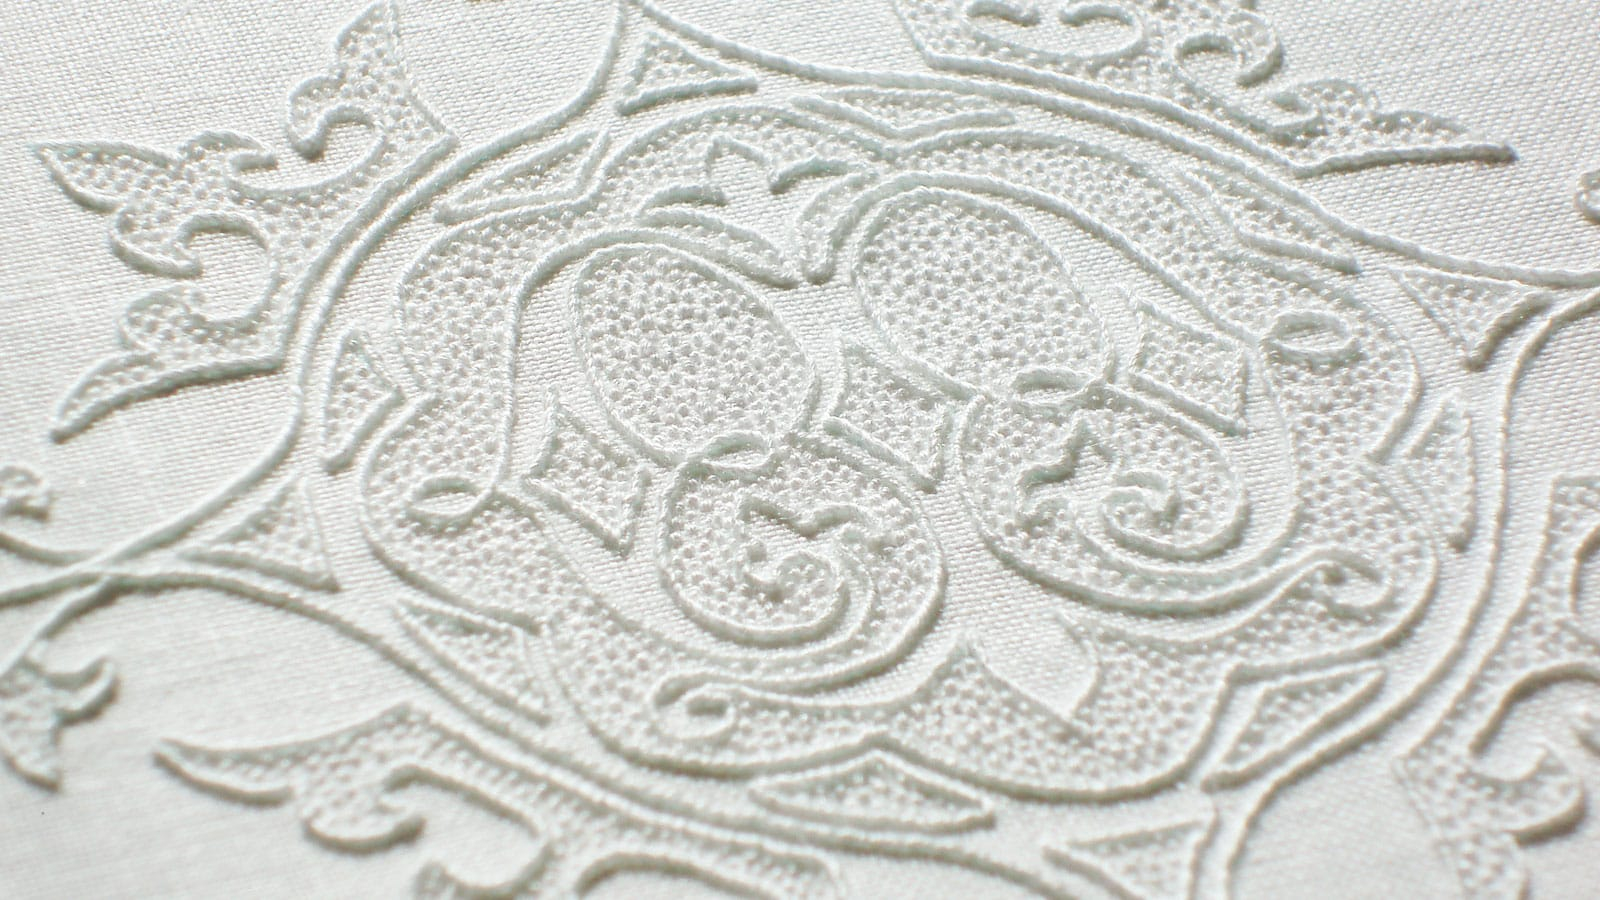 How To Make Hand Embroidery Patterns Needlenthread Tips Tricks And Great Resources For Hand Embroidery